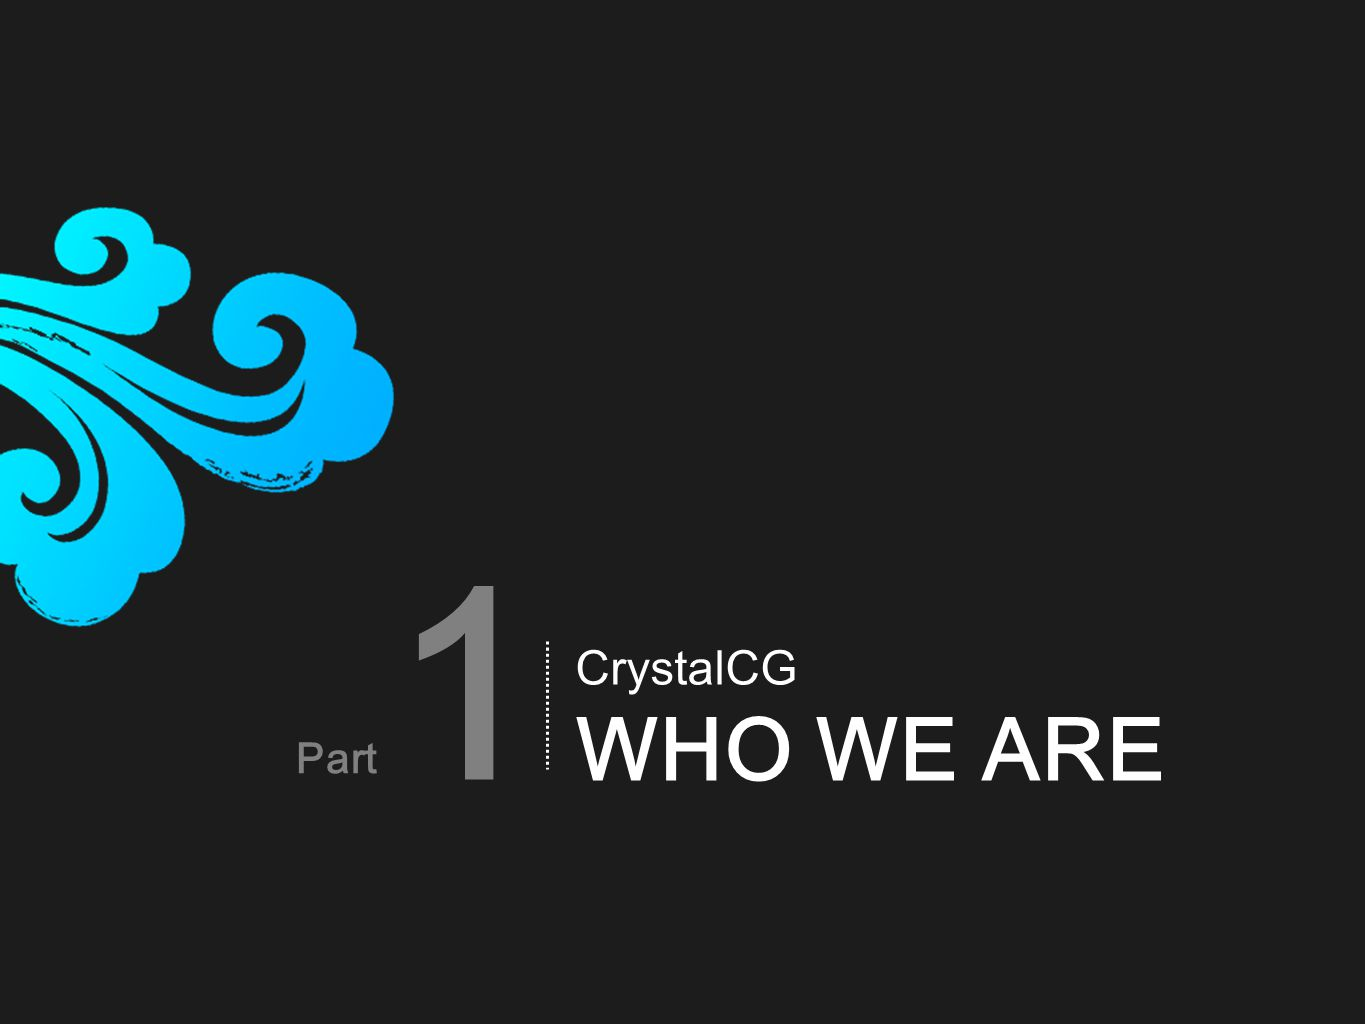 Part CrystalCG WHO WE ARE 1